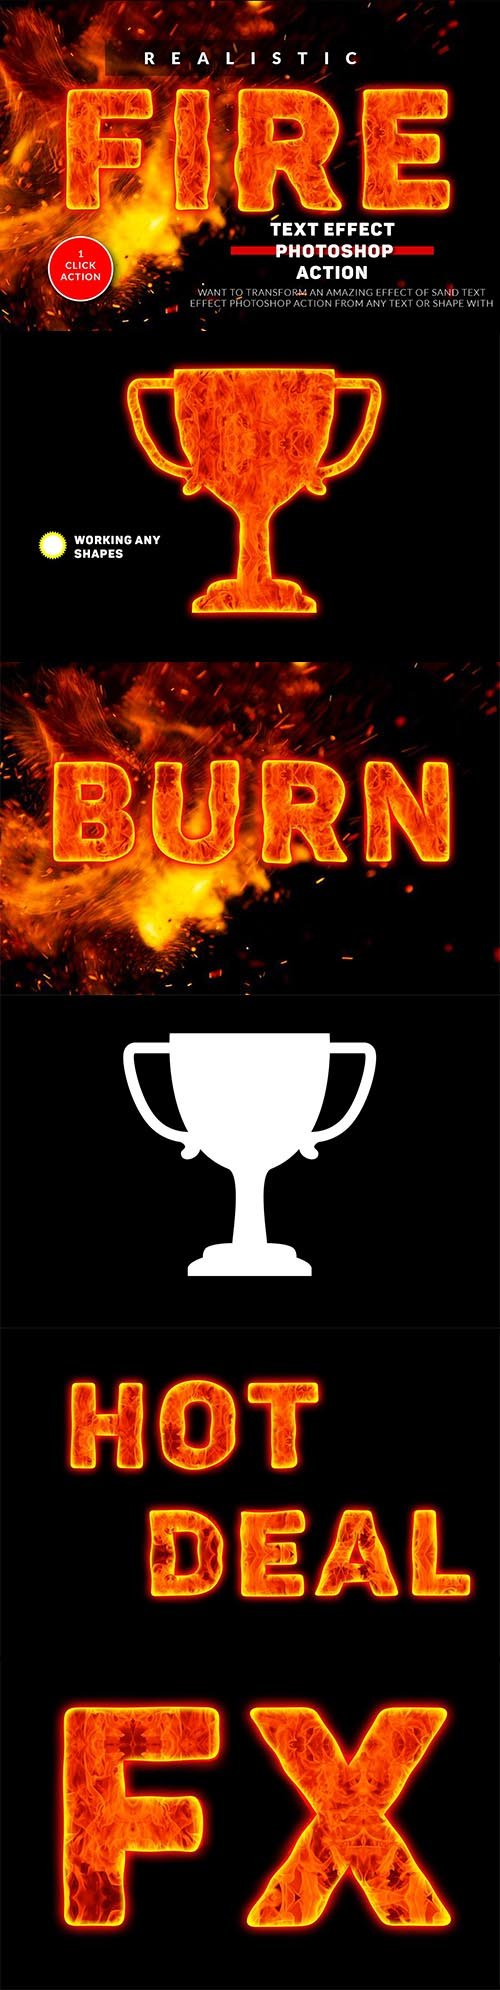 CreativeMarket - Fire Text Effect Photoshop Action 3594709